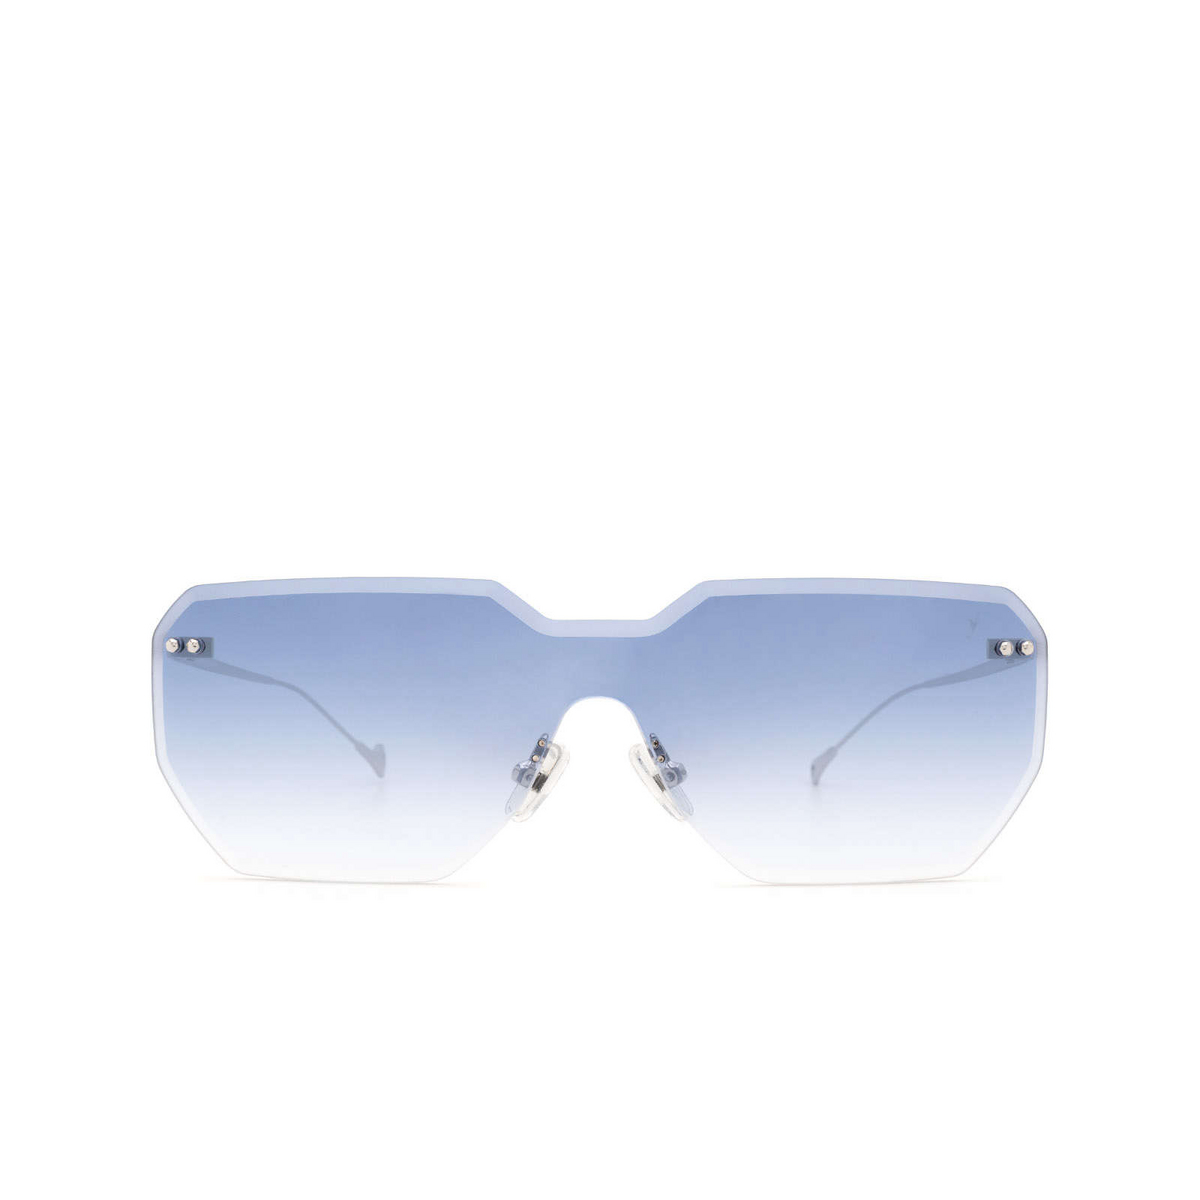 Eyepetizer® Mask Sunglasses: Brickel color Silver C.1-26F - front view.